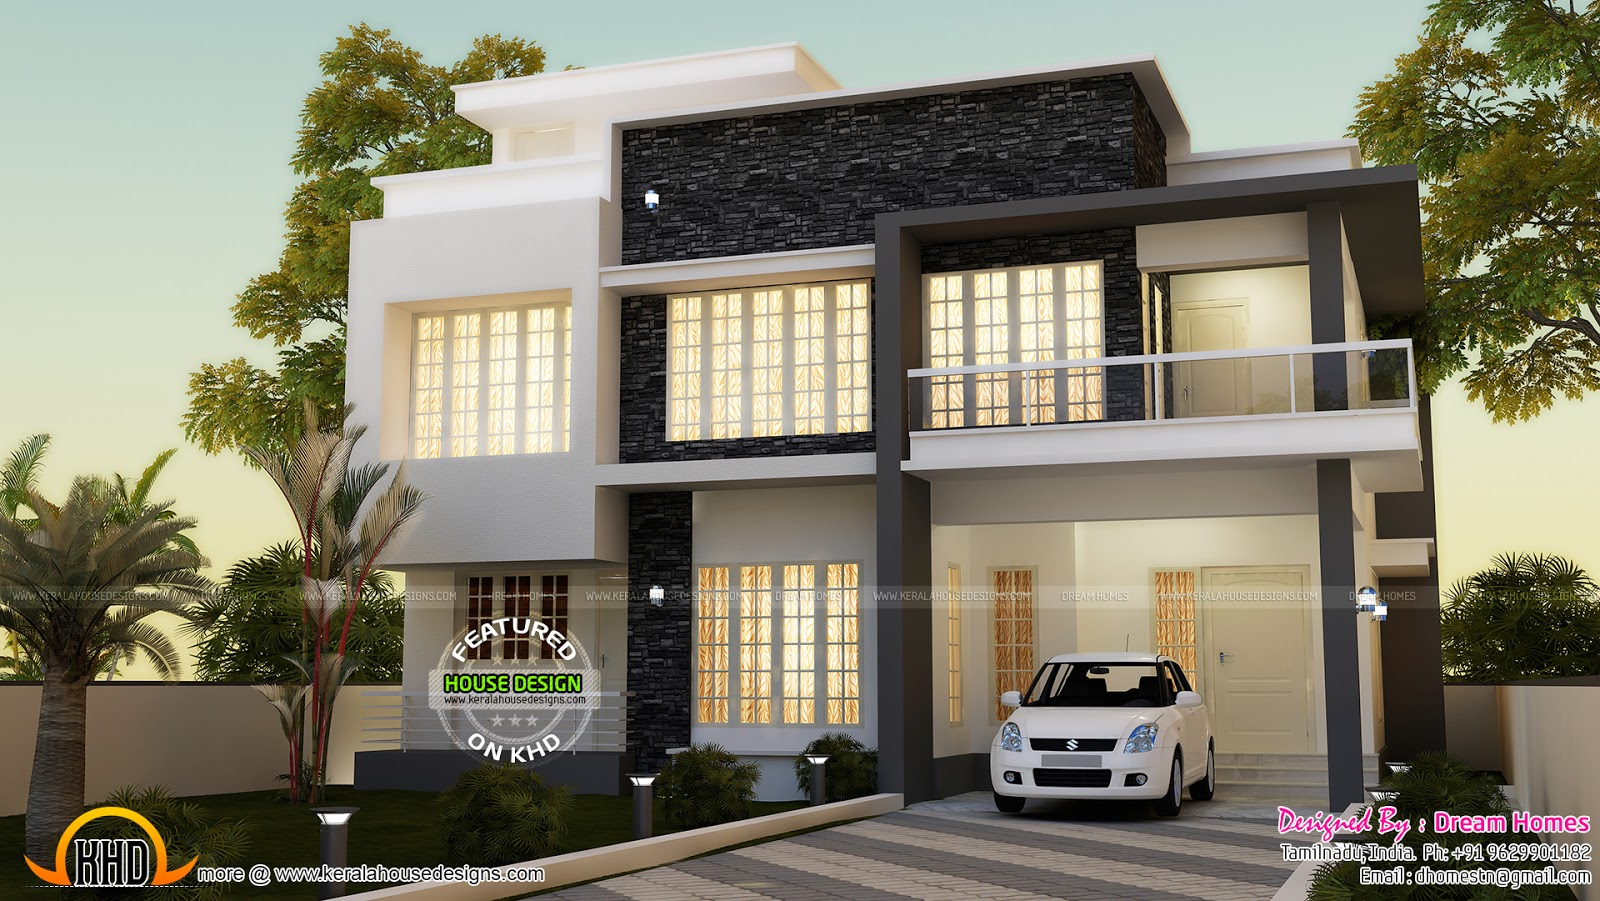 Simple contemporary house and plan kerala home design and floor plans Simple modern house designs and floor plans